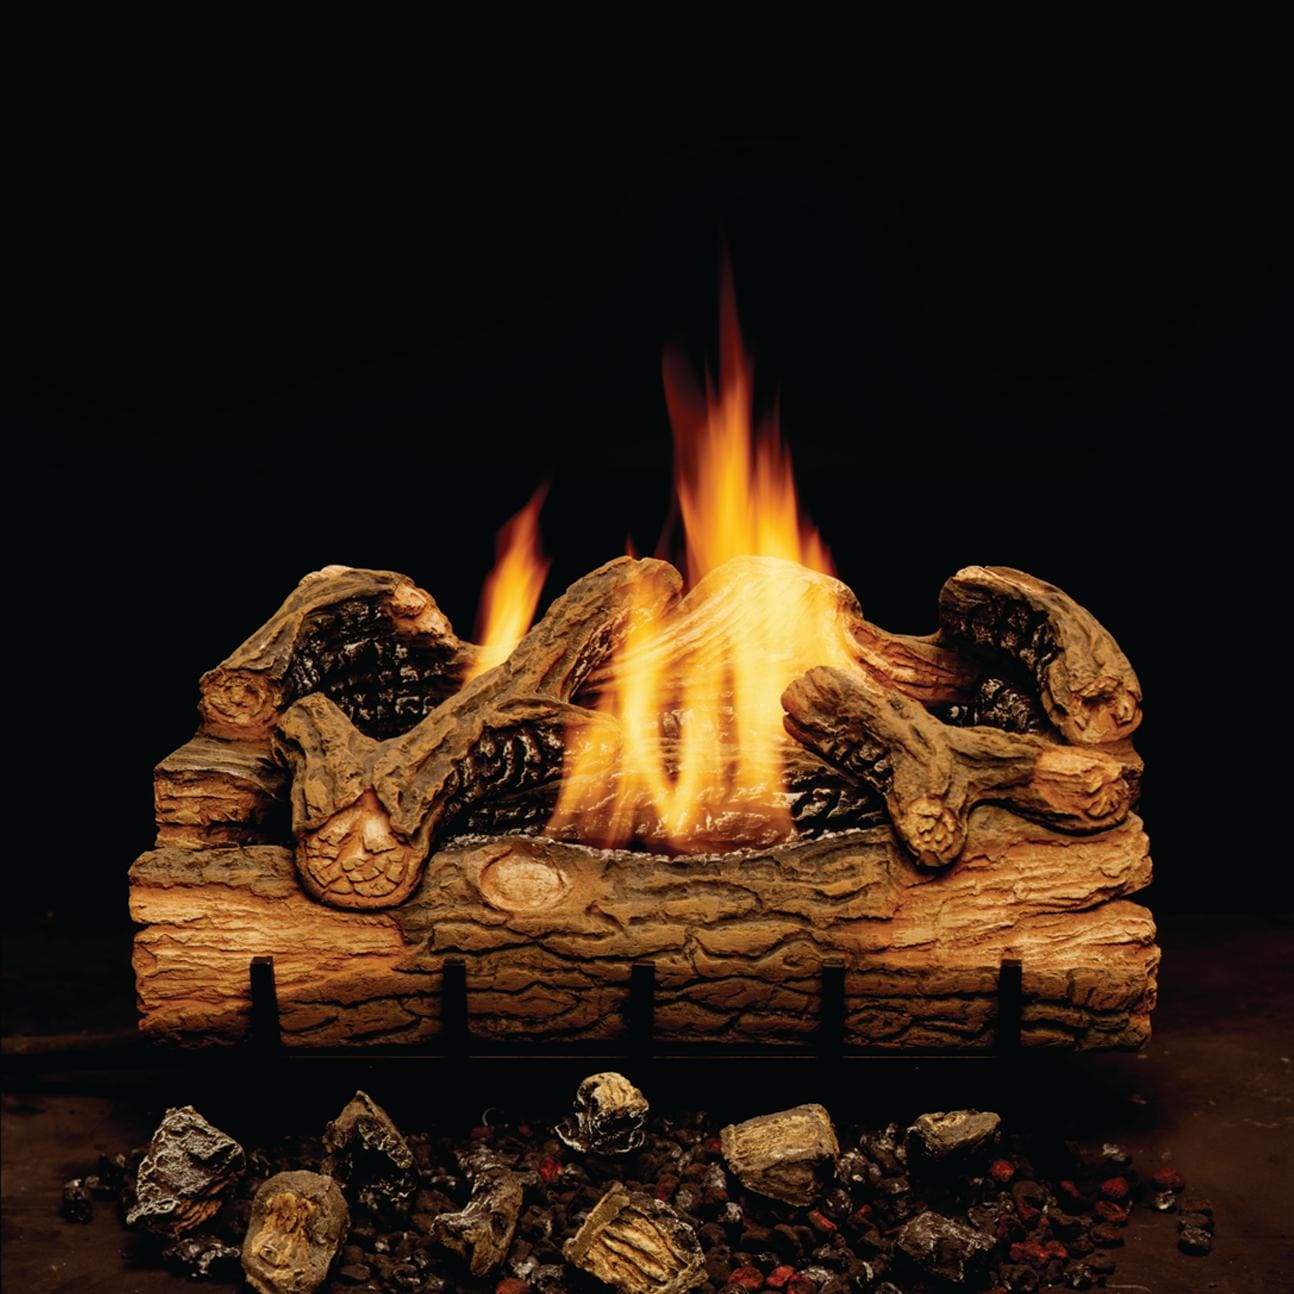 Monessen Charred Hickory 24-Inch Vent Free Gas Log Set W/ Propane Gas Double Yellow Flame Burner - Manual Safety Pilot